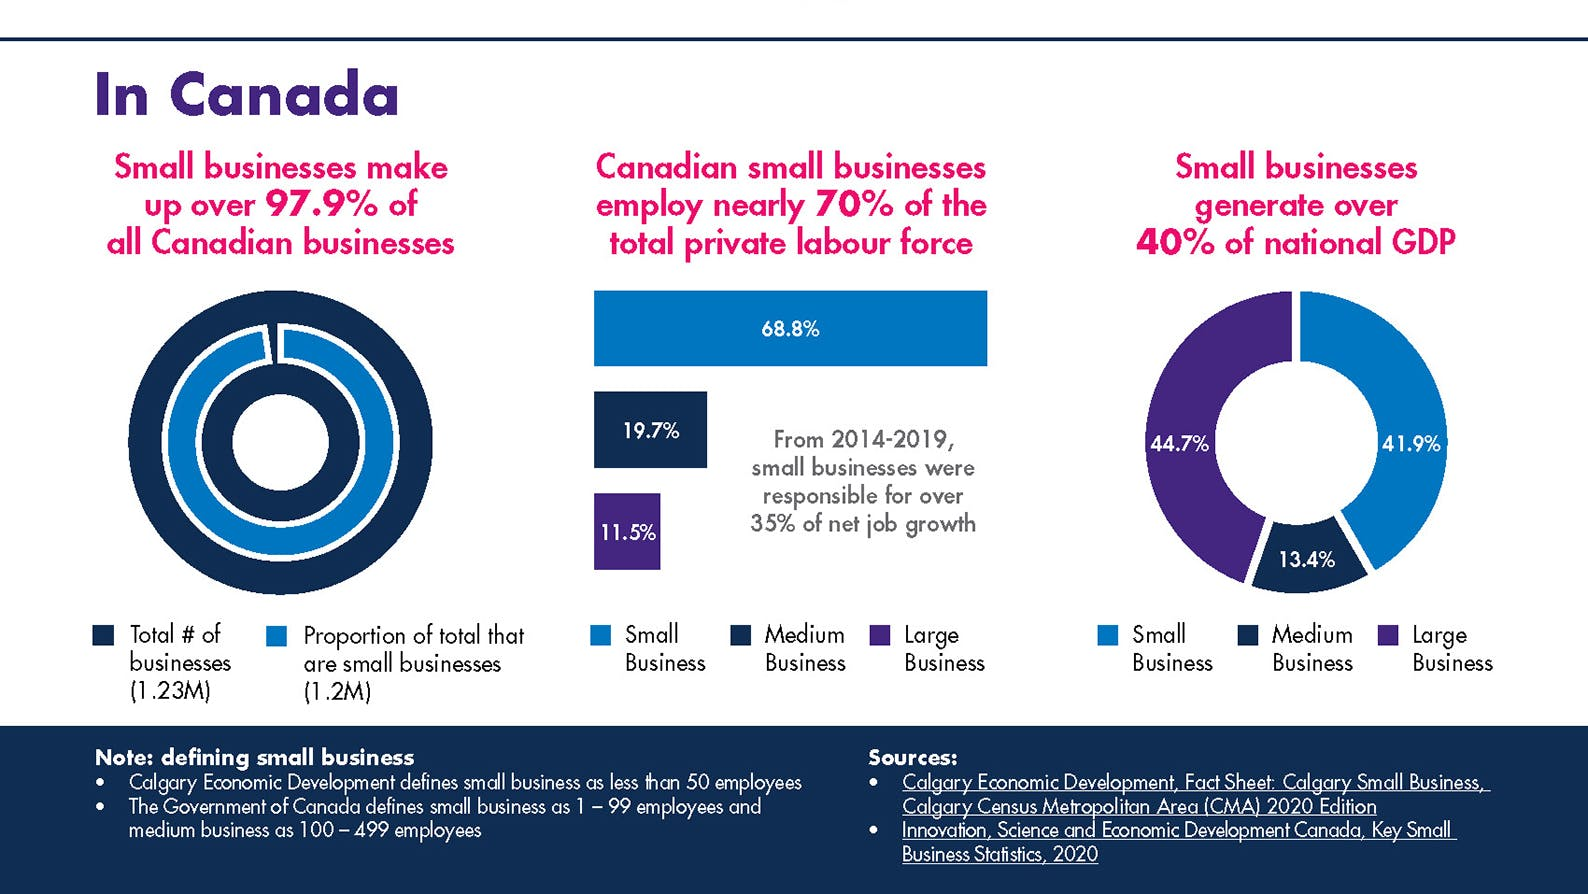 Small business statistics for Canada